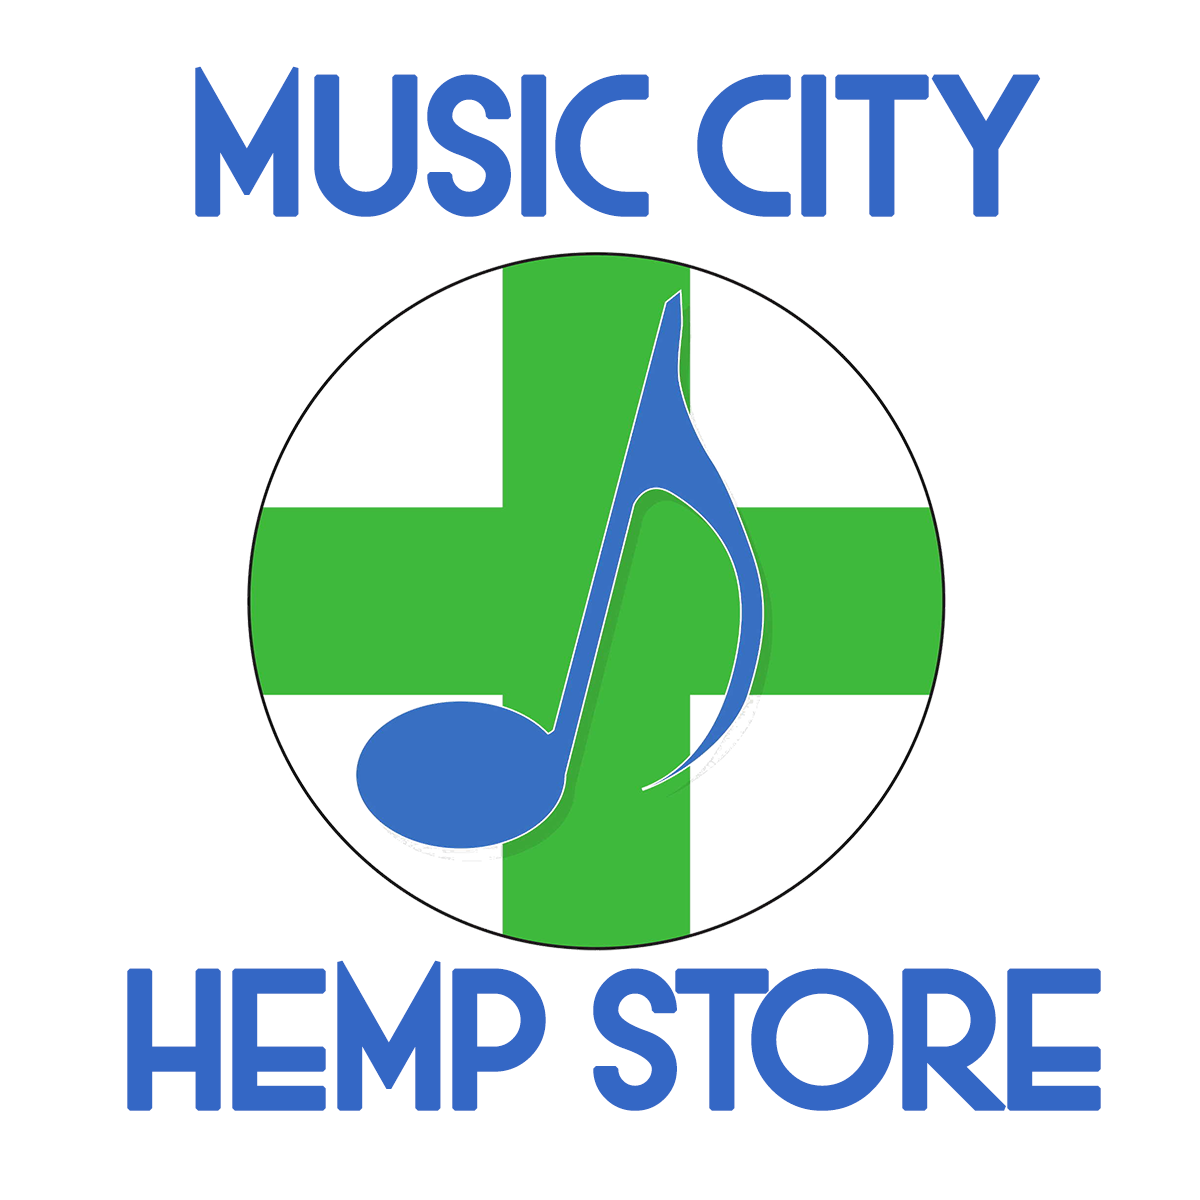 Music City Hemp Store logo